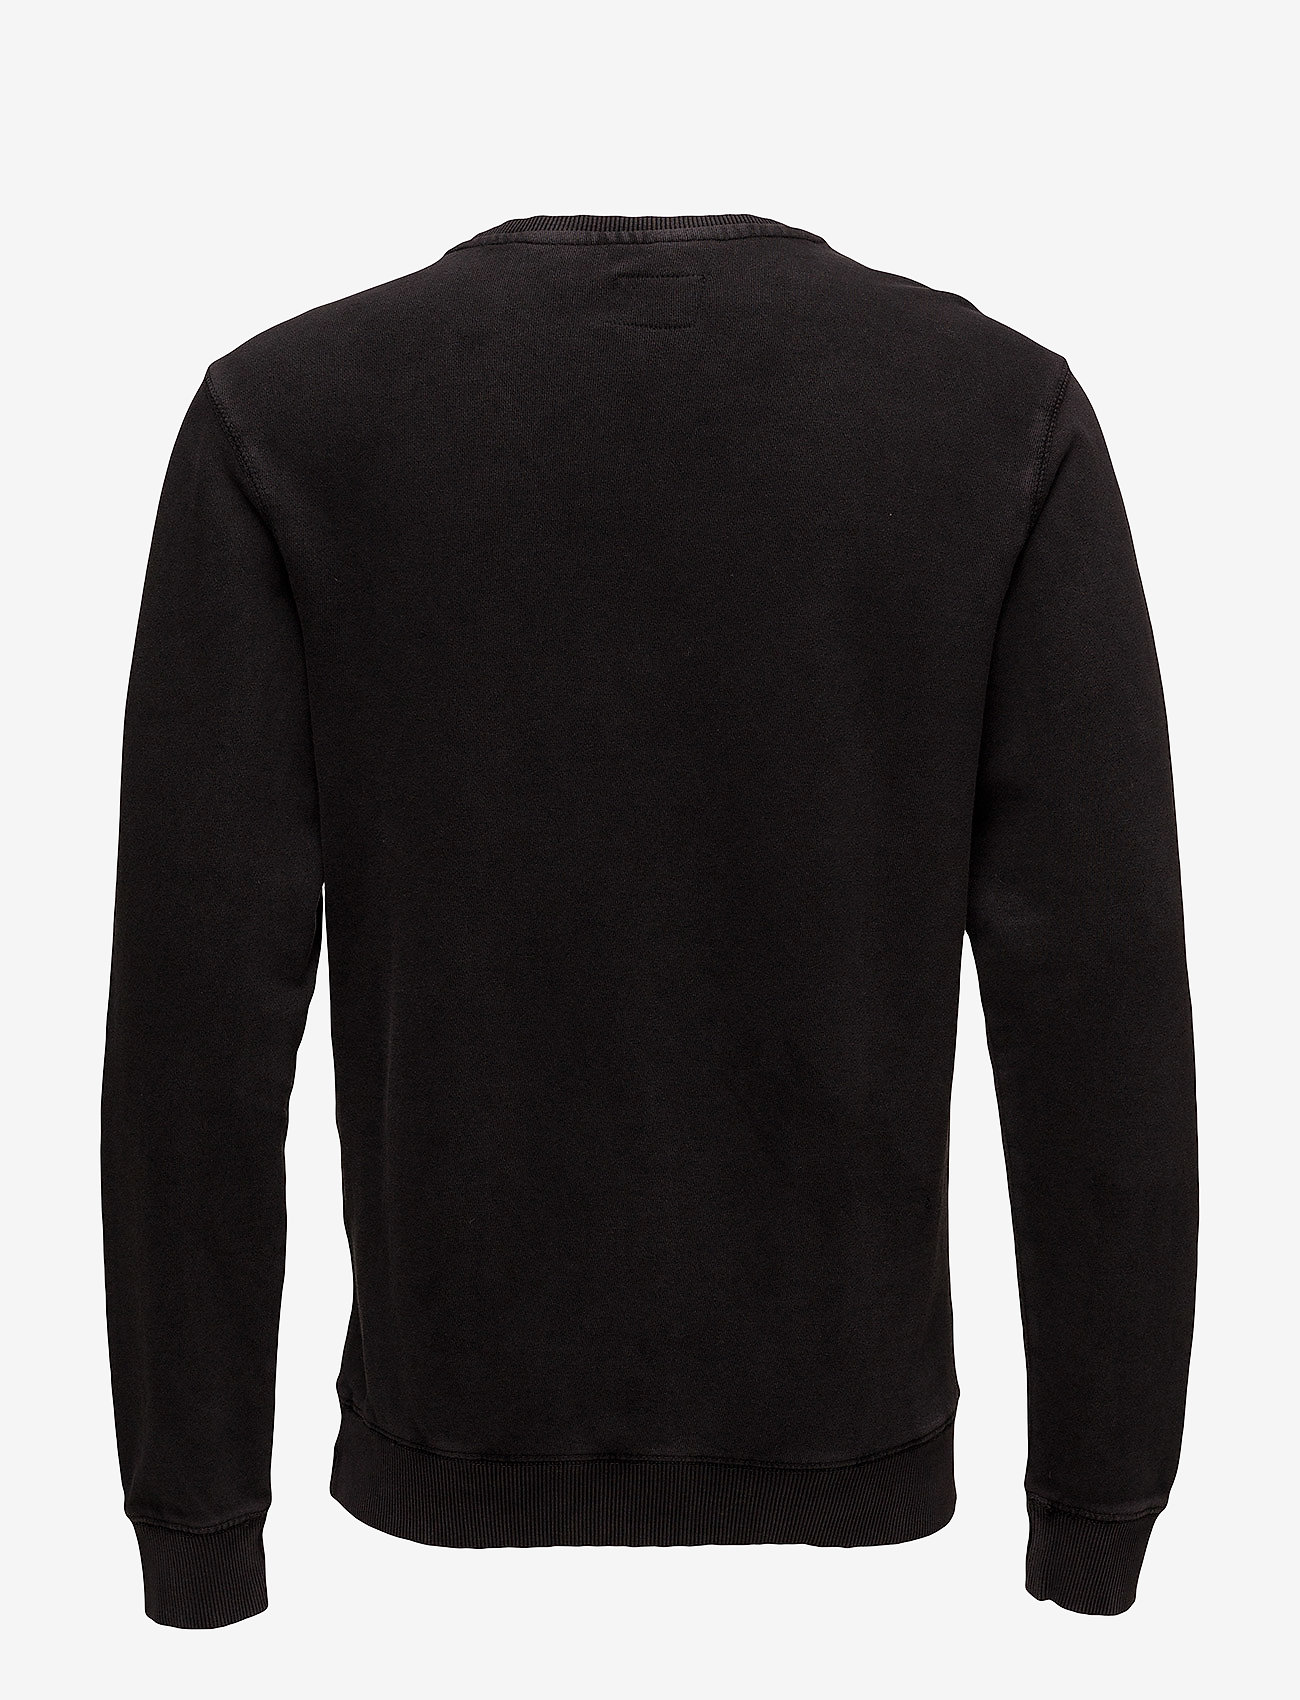 Blend - Sweatshirt - sweats - black